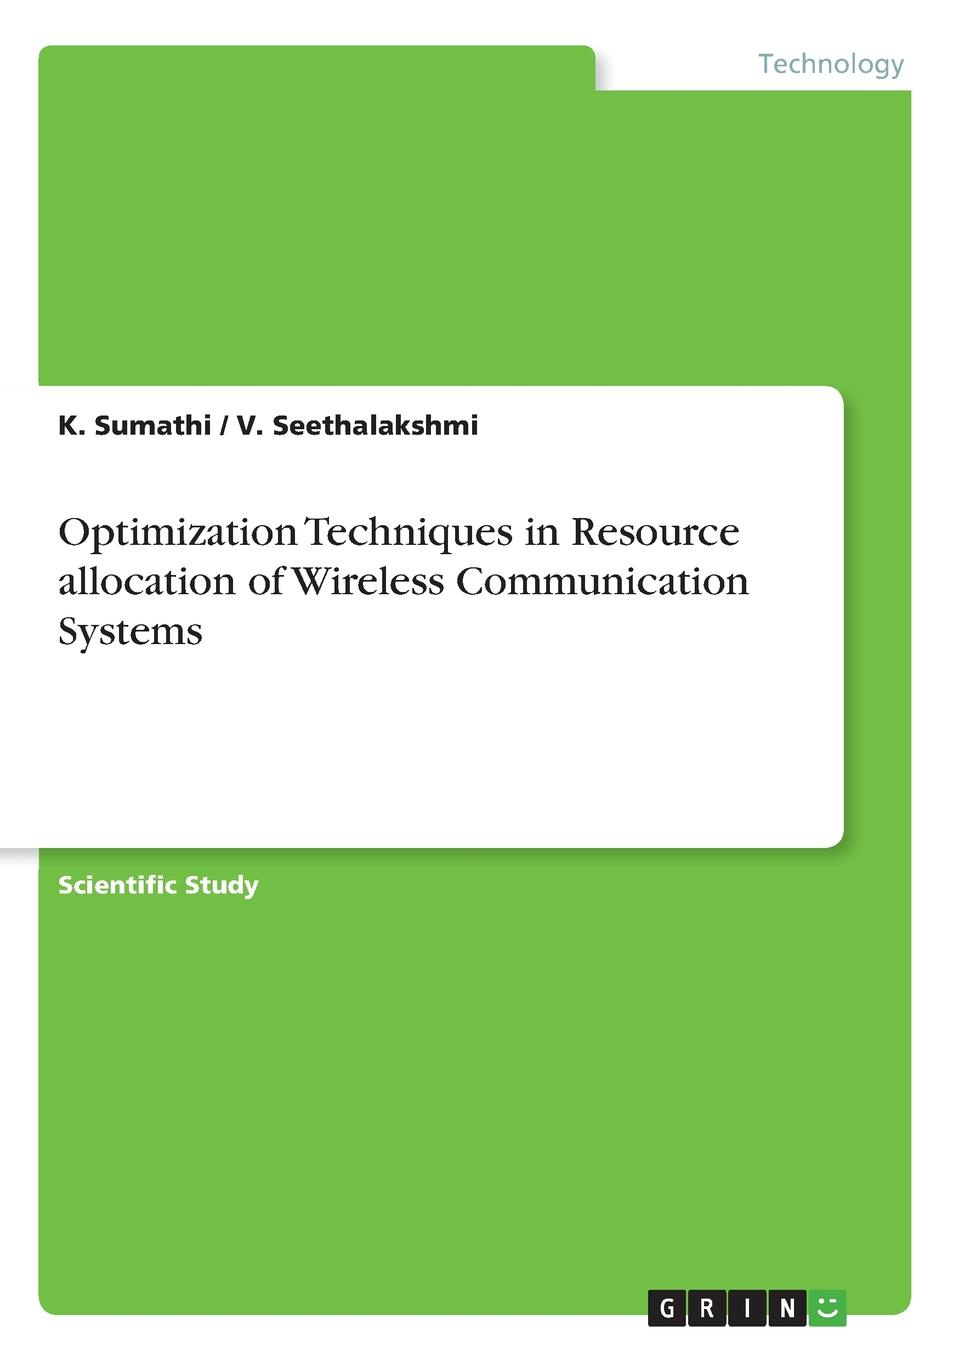 V. Seethalakshmi, K. Sumathi Optimization Techniques in Resource allocation of Wireless Communication Systems medium access control for multimedia wireless systems